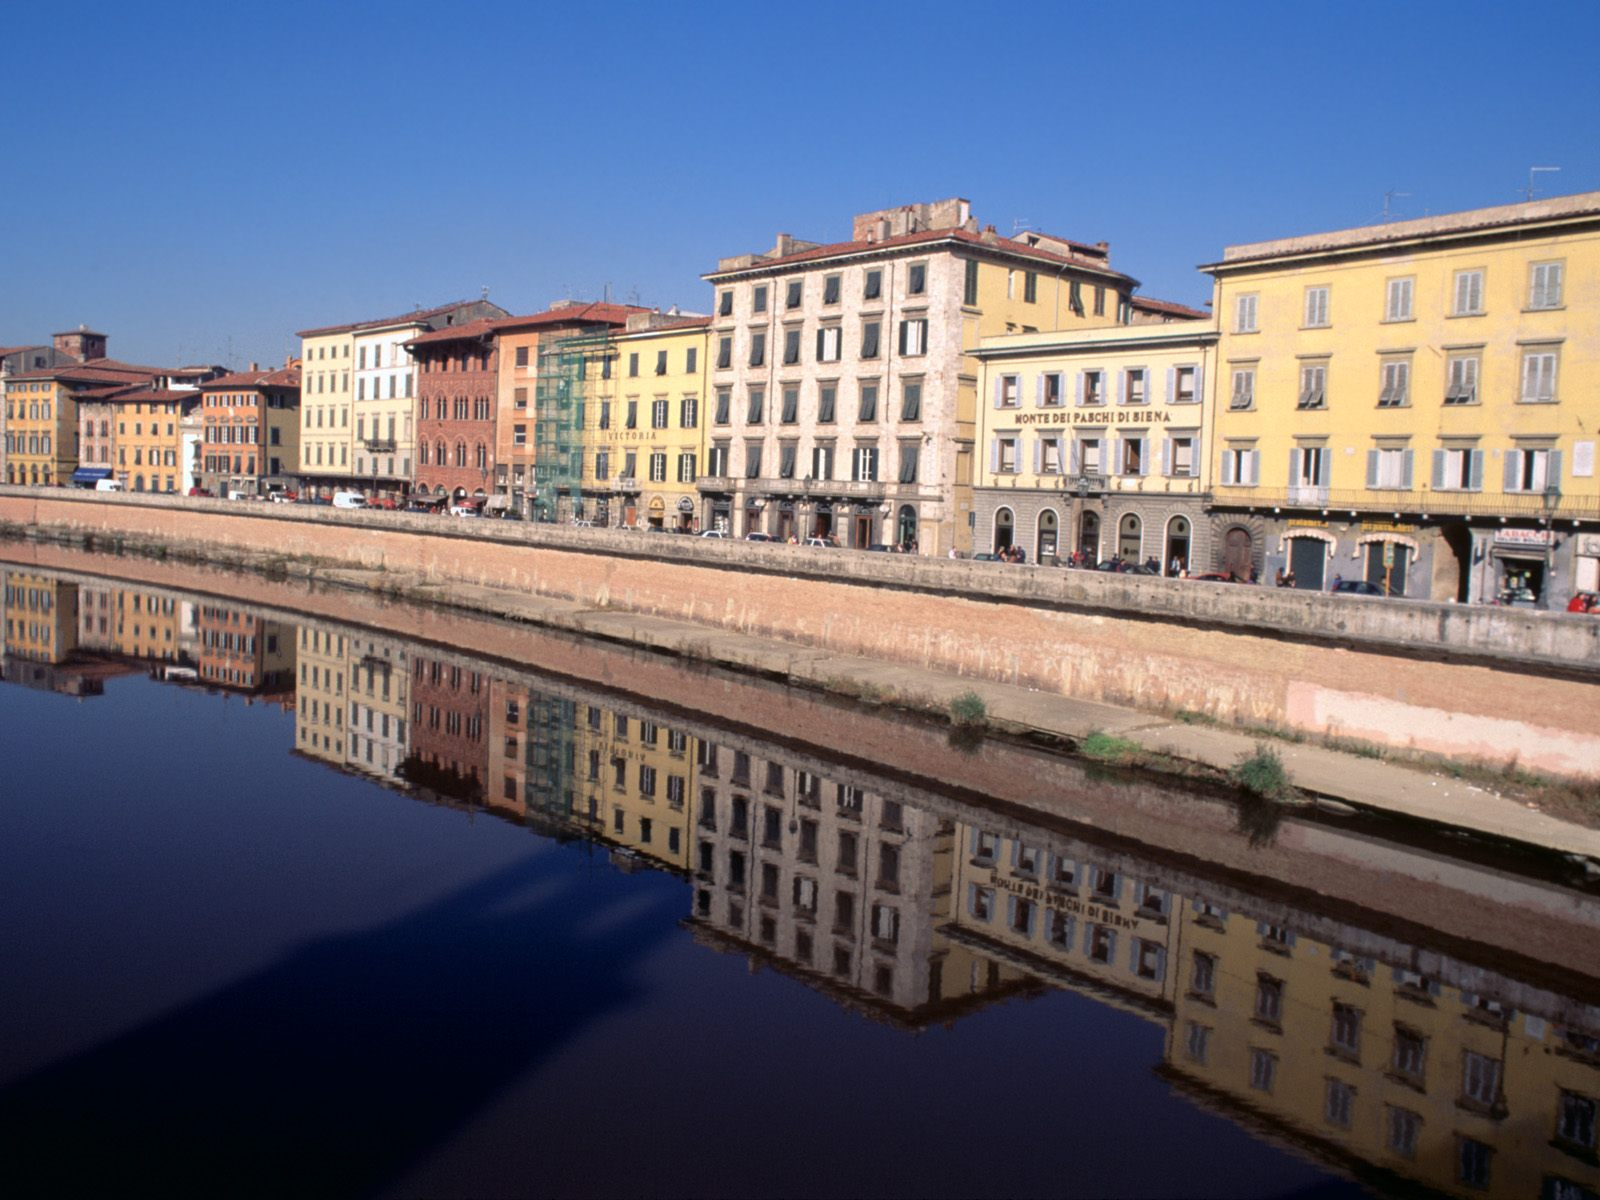 Mirrored-Pisa-Italy-1-1600x1200